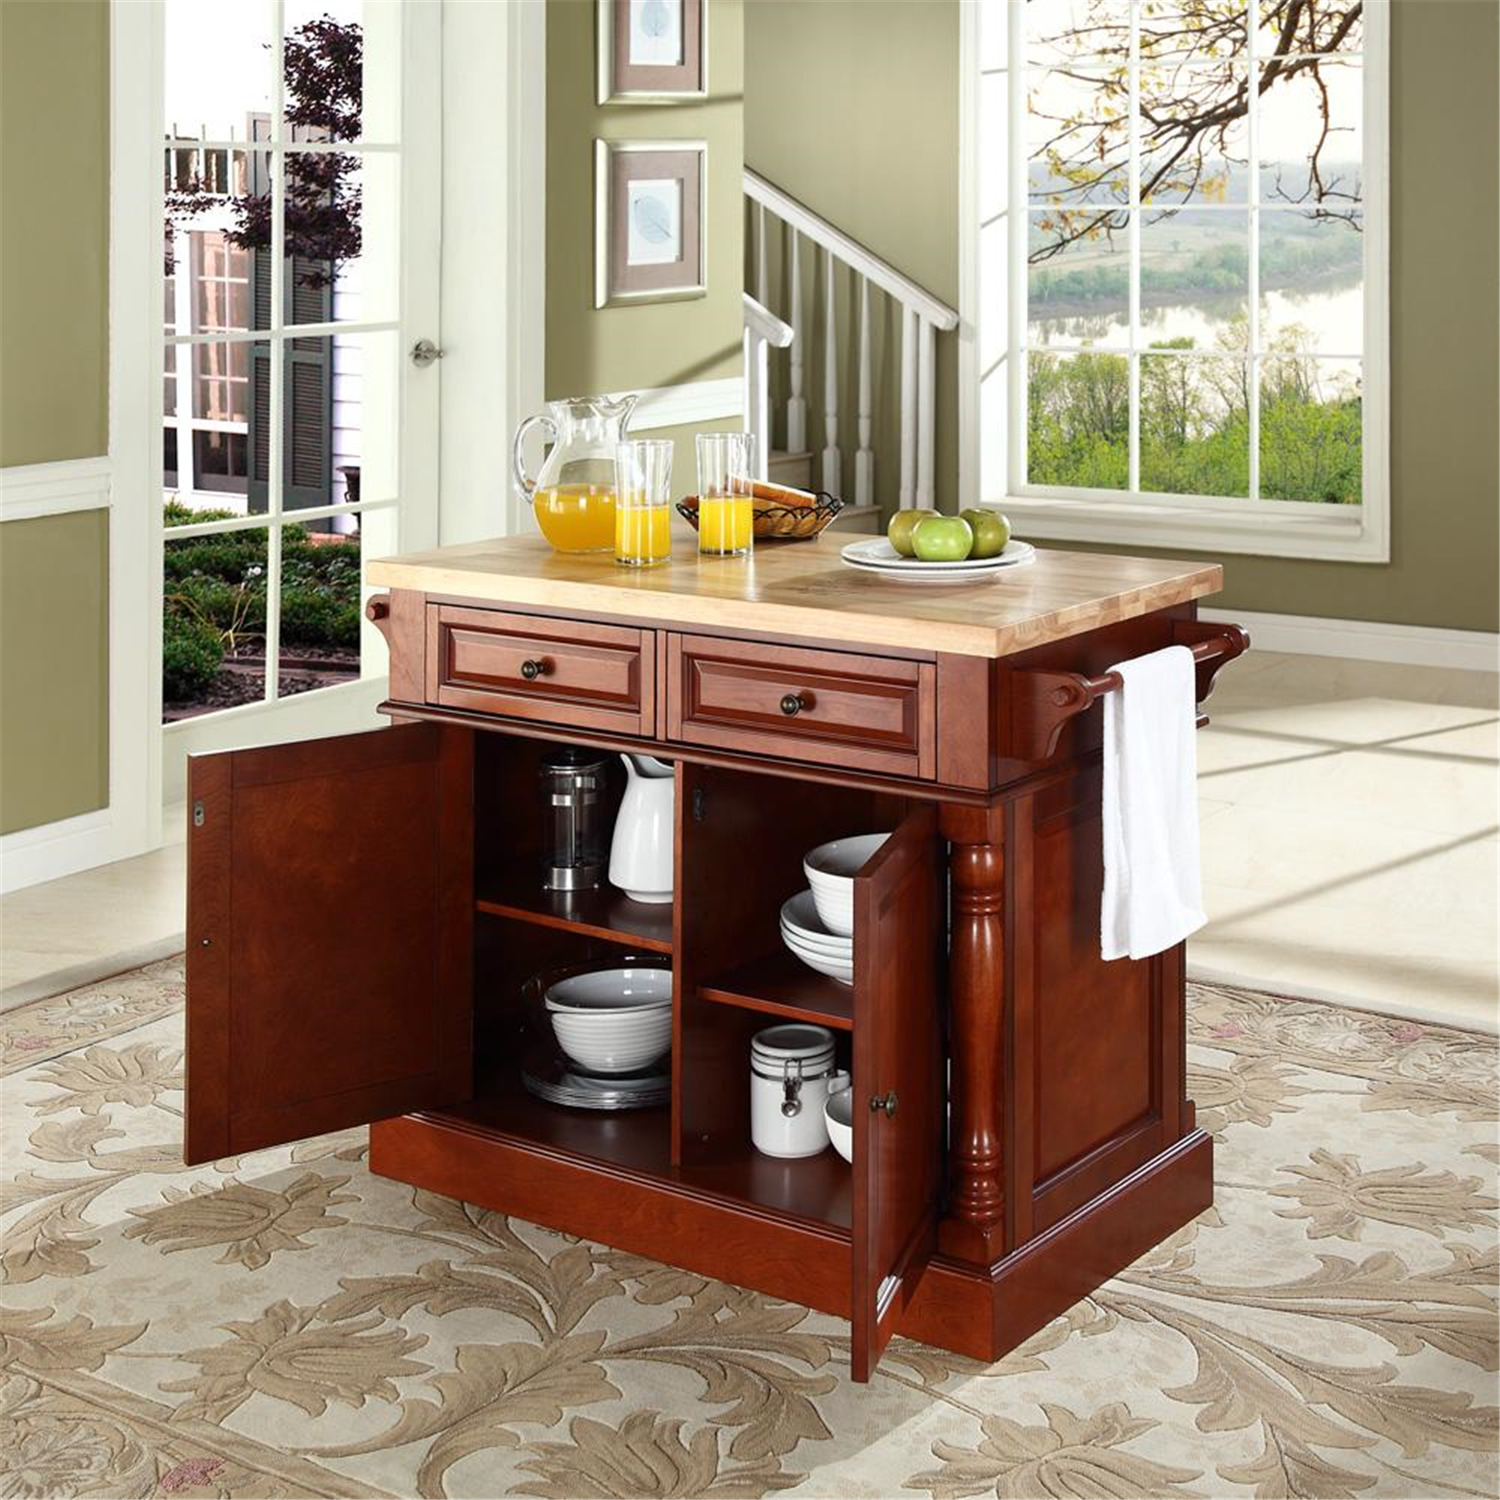 crosley butcher block kitchen island by oj commerce. Black Bedroom Furniture Sets. Home Design Ideas